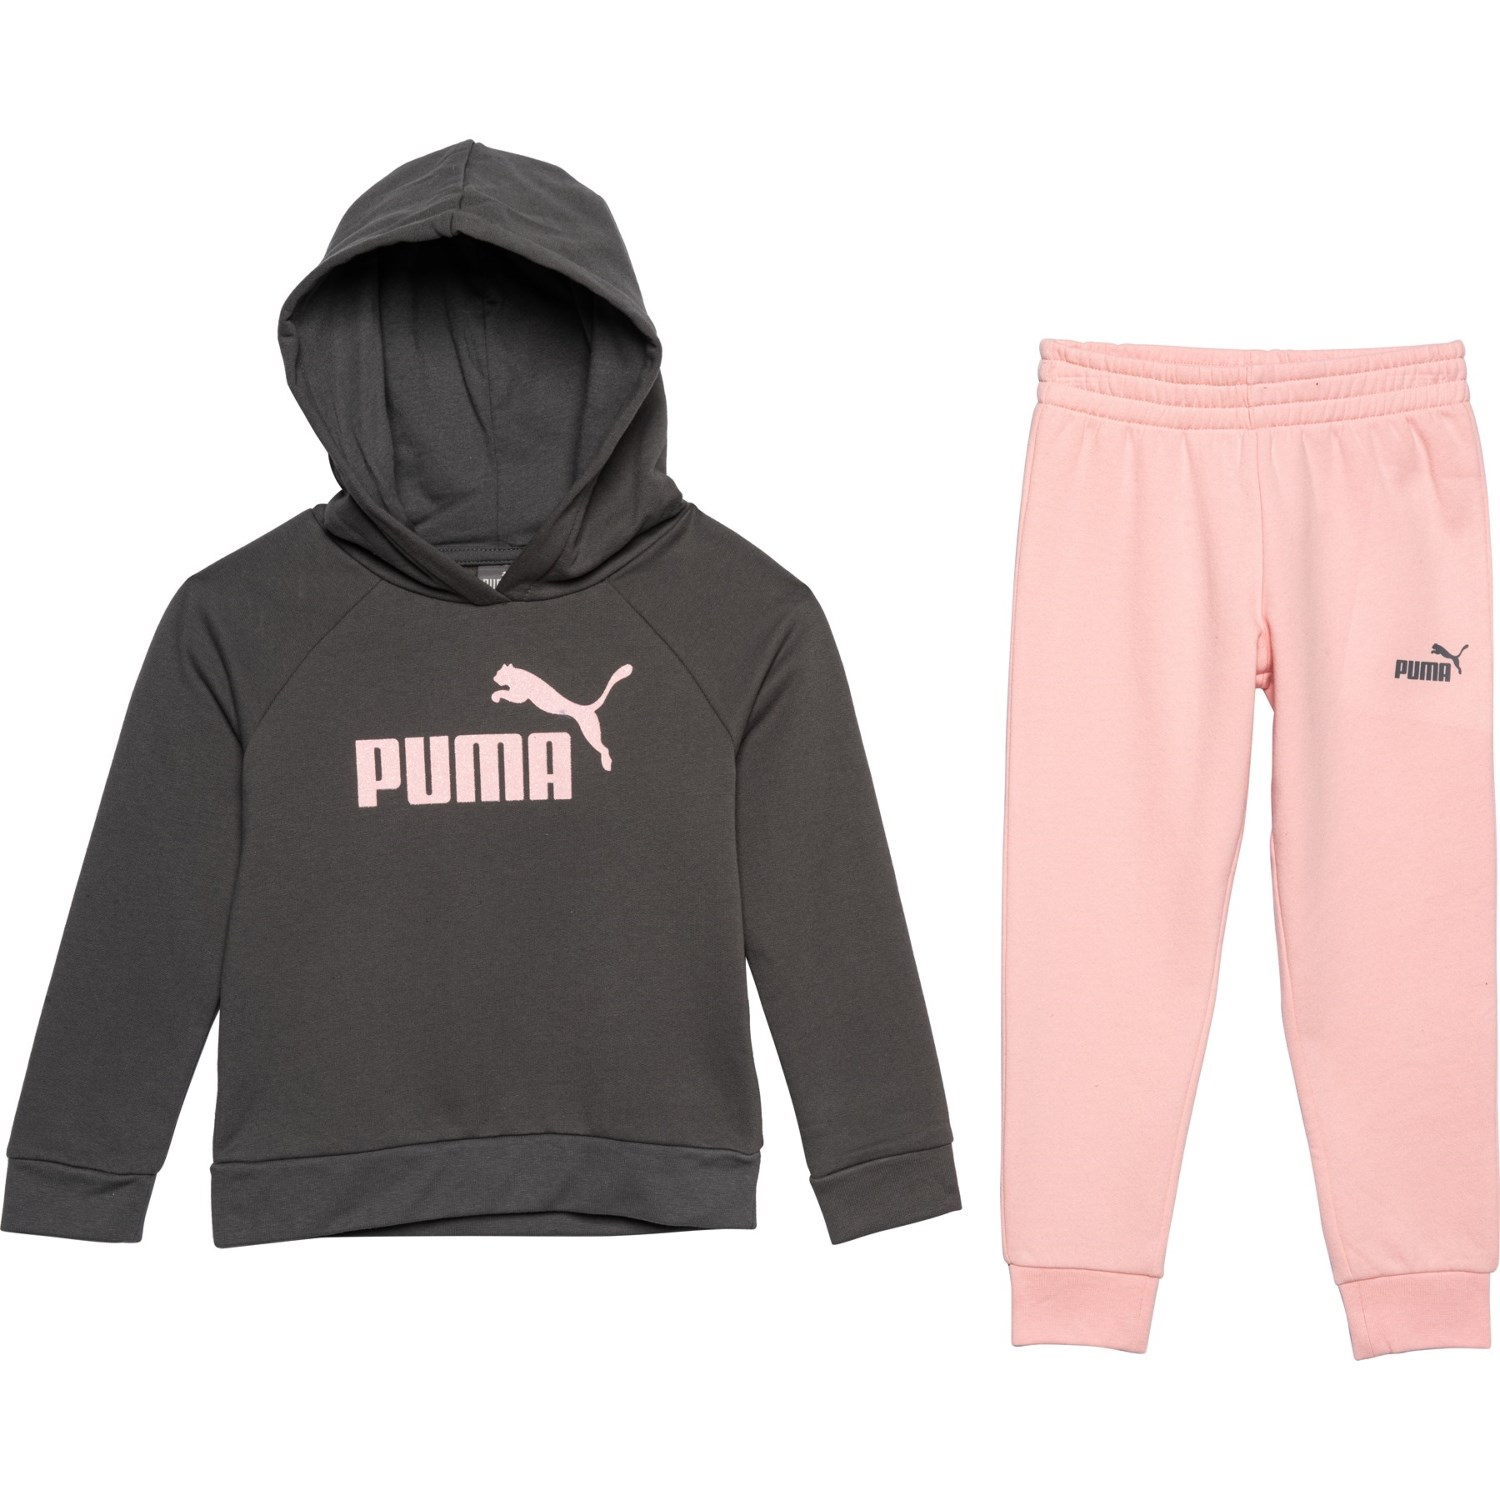 336995d8 Puma Fleece Hoodie and Joggers Set (For Little Girl) - Save 67%